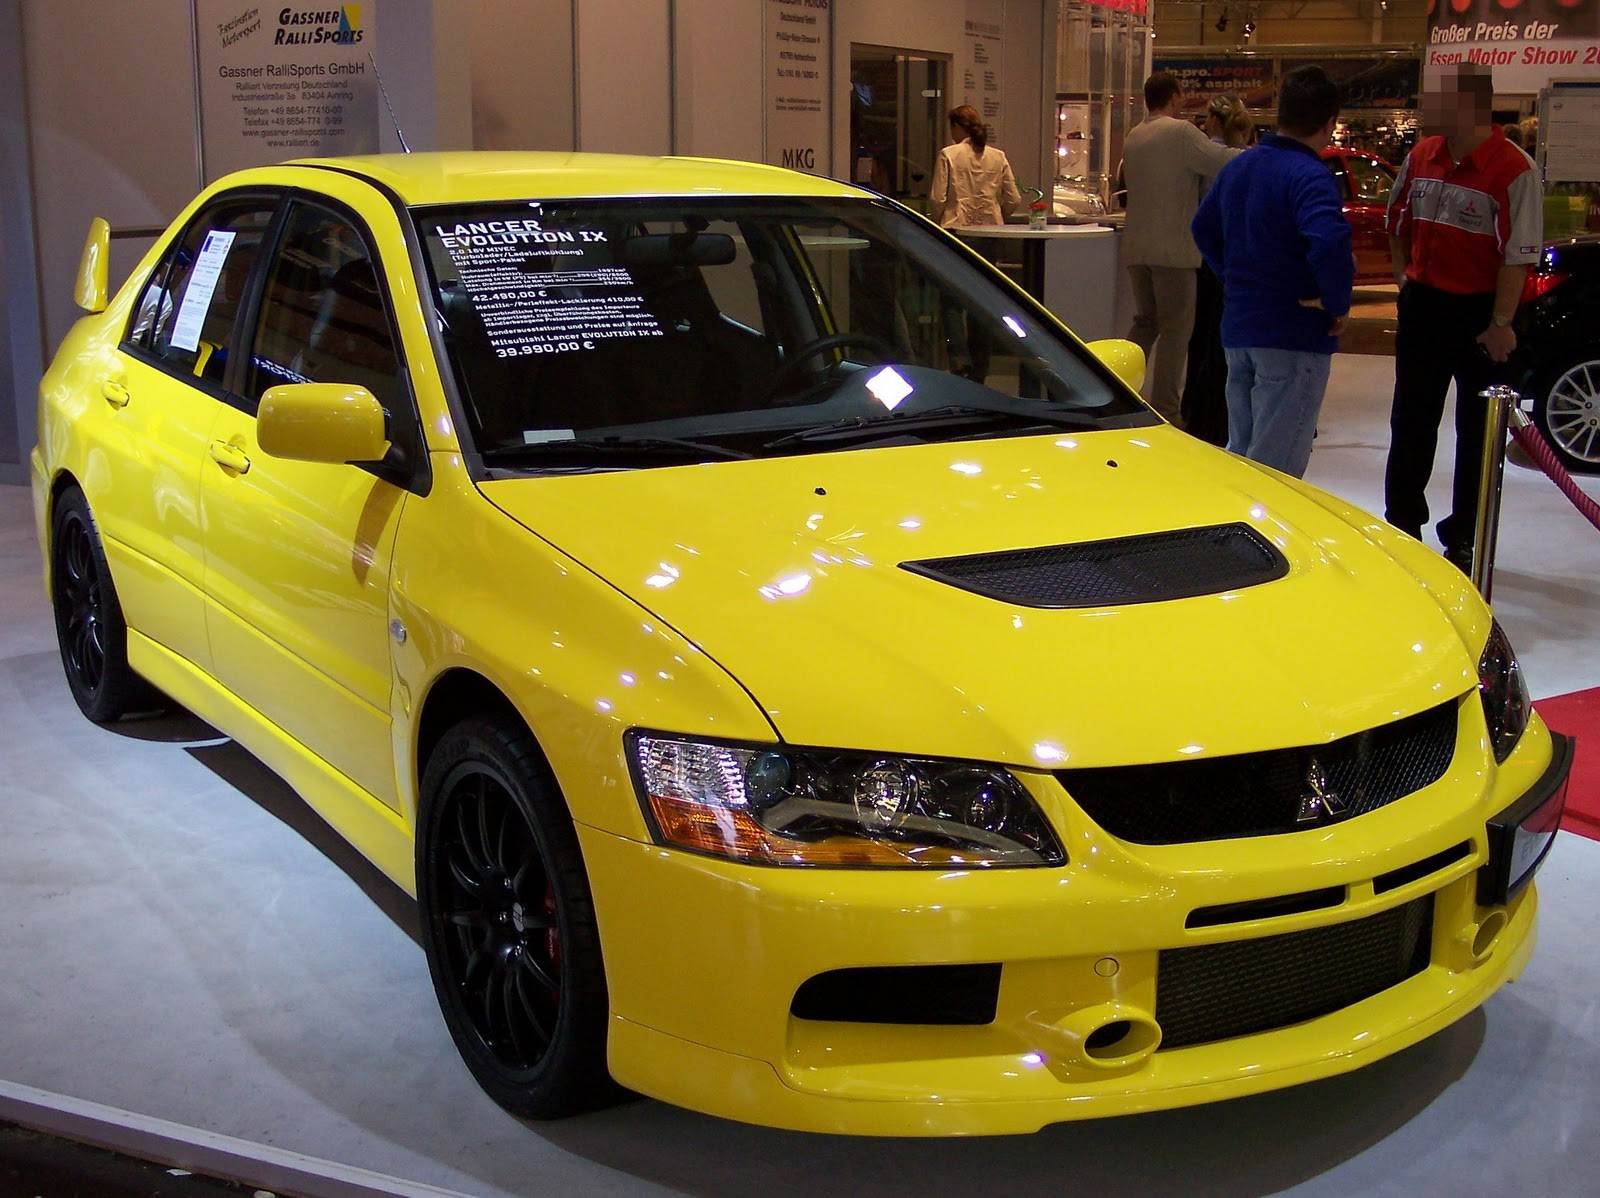 711674 04 Ralliart New Daily Driver besides 675778 My 2002 Mitsubishi Lancer Es further 191634957740 besides 186785 Feeler Possible Part Out 02 Es also 314270 Real Jdm Look 3. on lancer cedia bumper